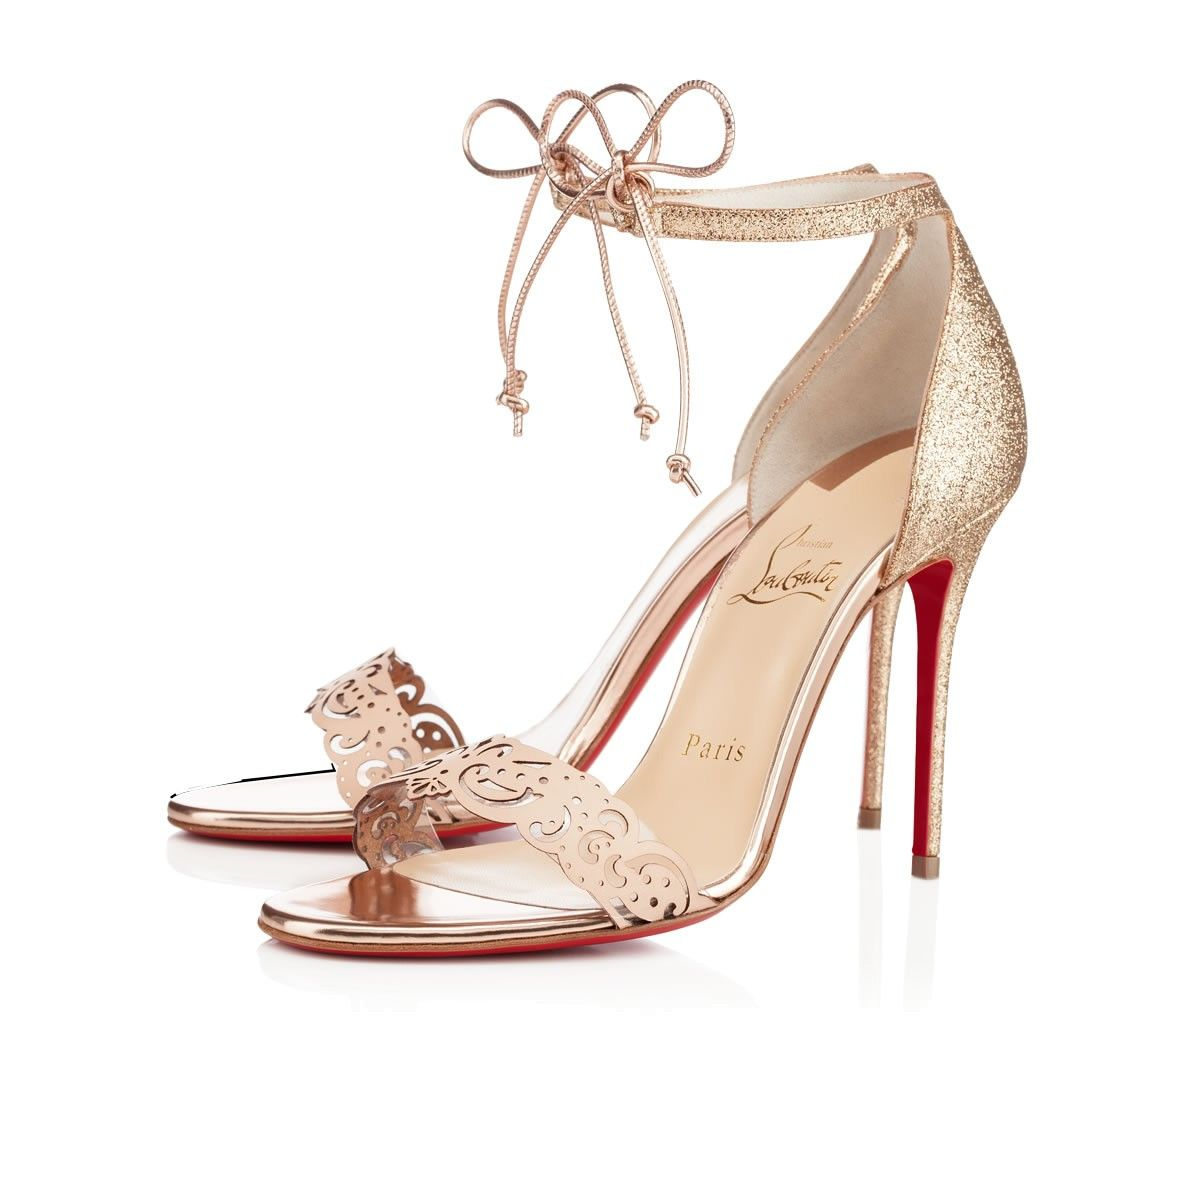 Wedding Shoes 101 Everything You Need To Know To Shop For The Perfect Pa Christian Louboutin Wedding Shoes Louboutin Wedding Shoes Christian Louboutin Wedding